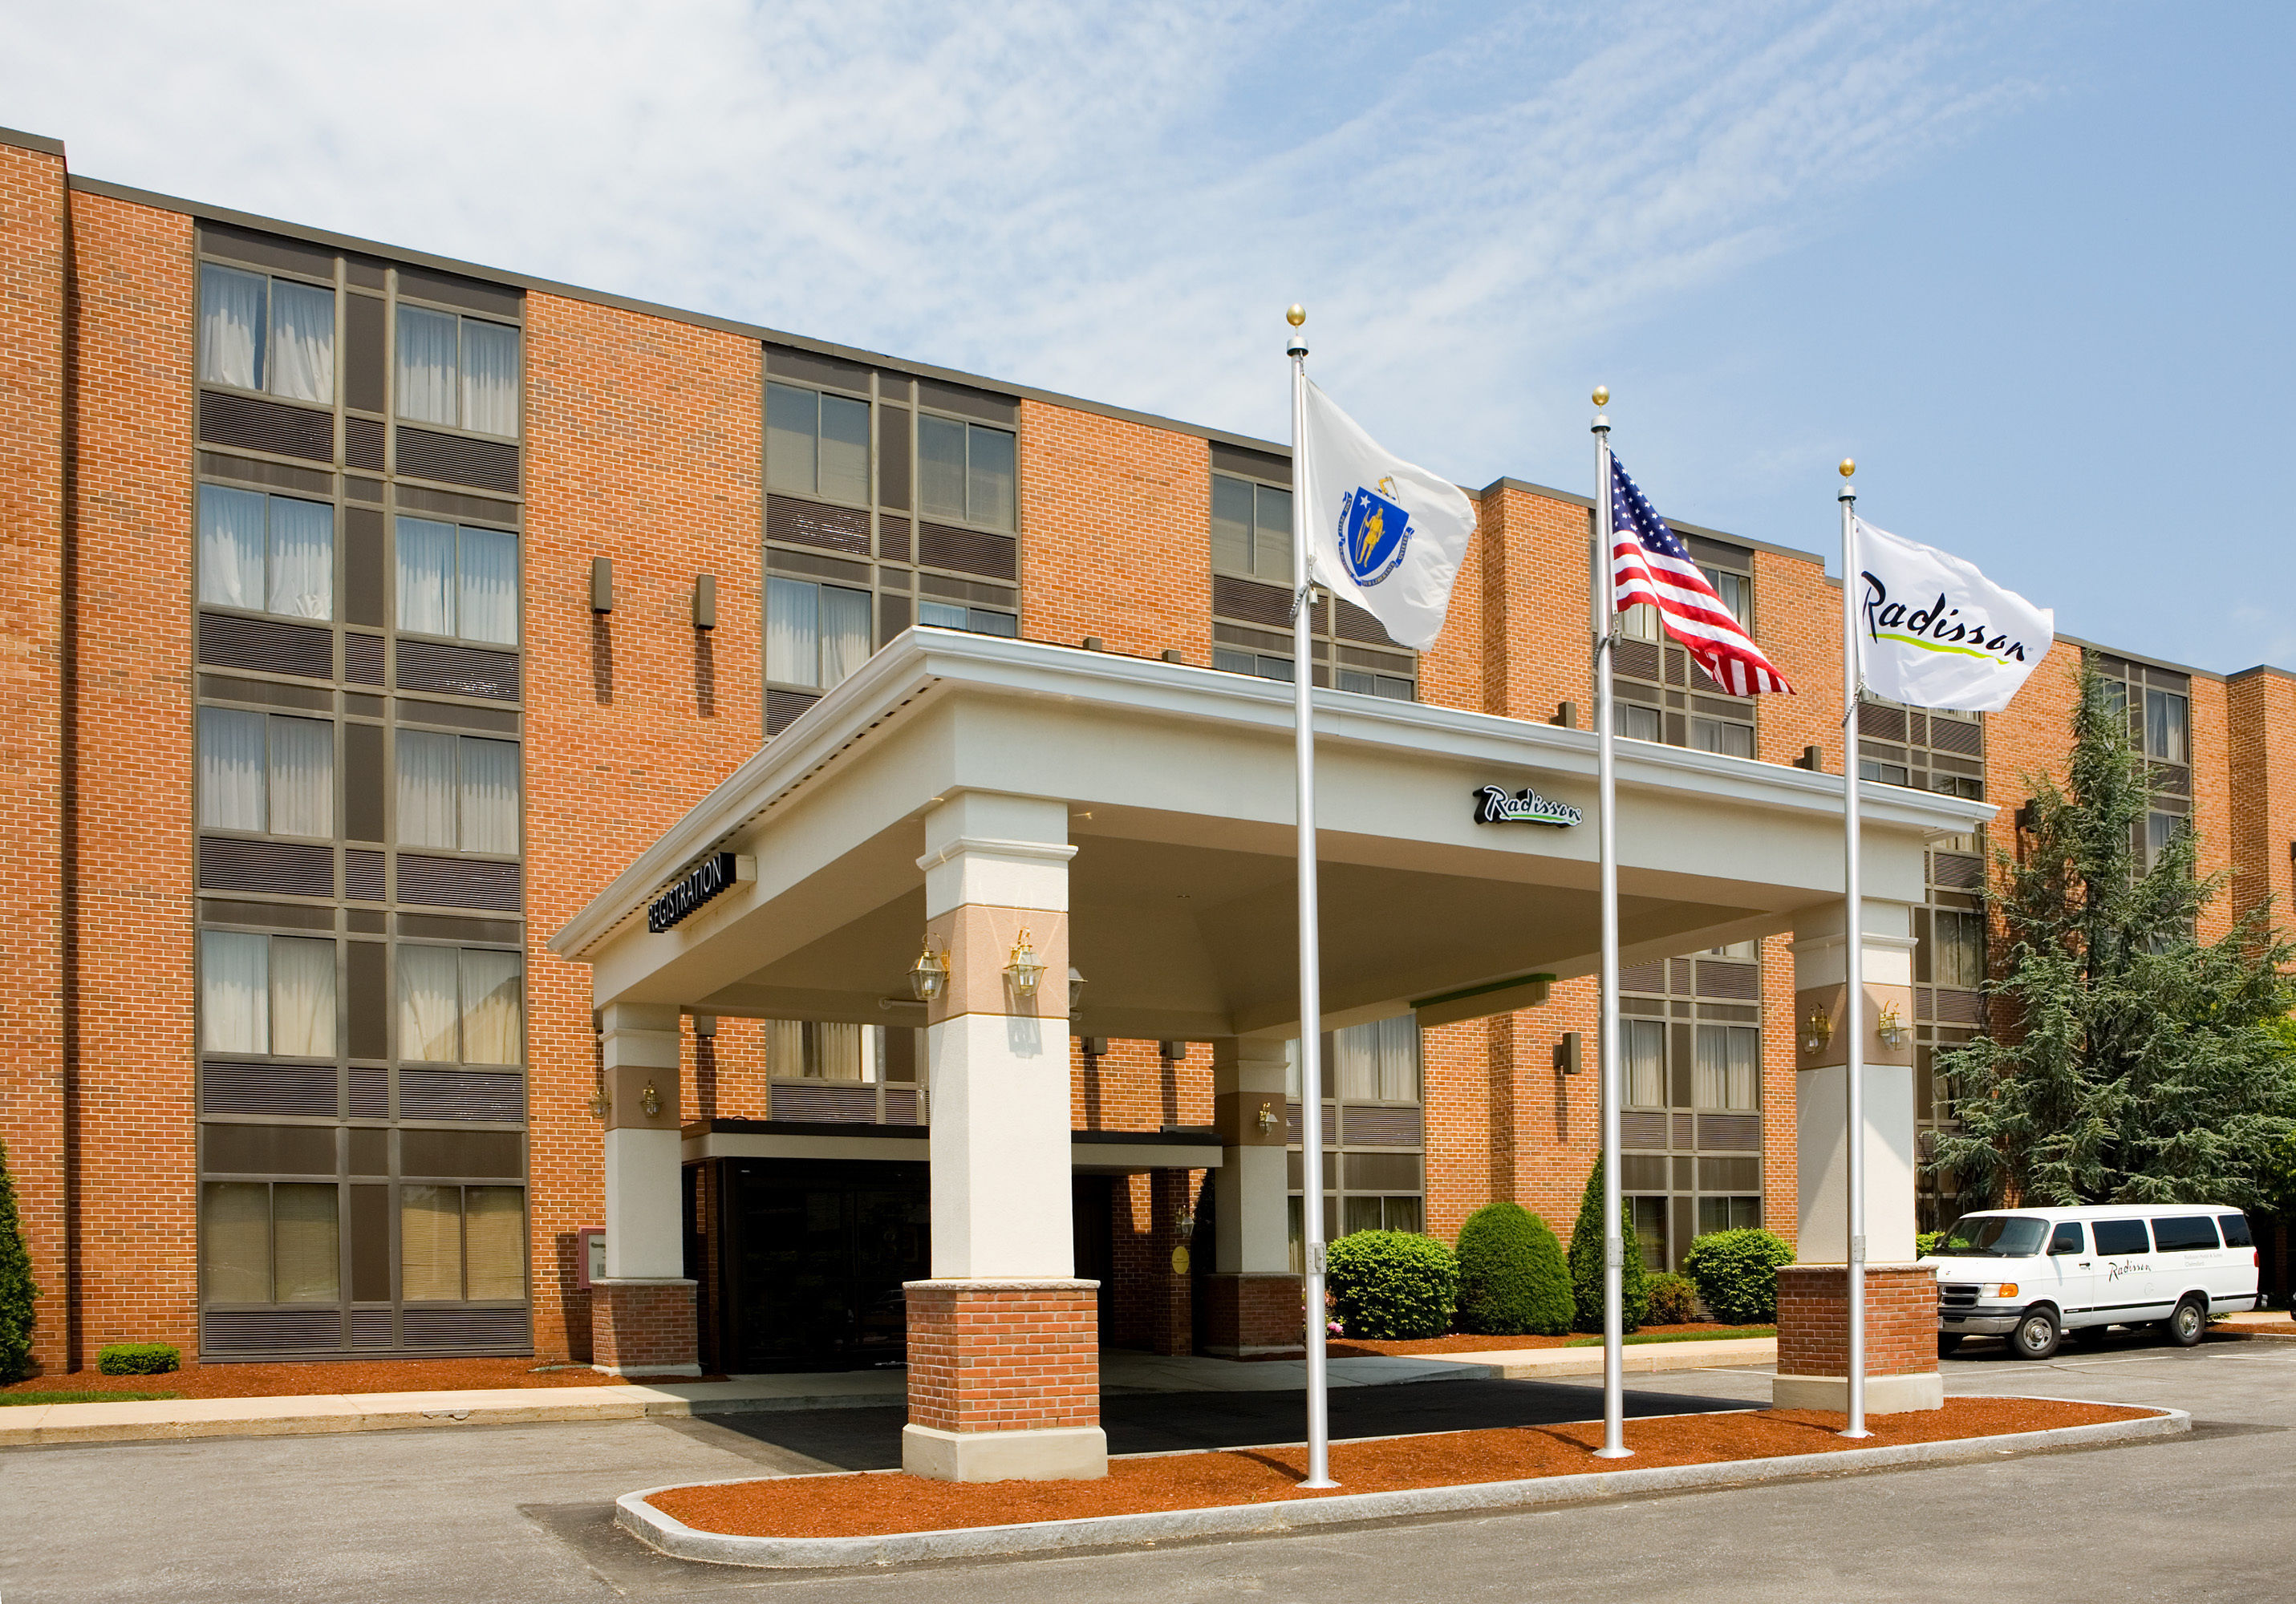 Radisson Hotel And Suites Chelmsford Lowell Ma 3 United States From Us 144 Booked